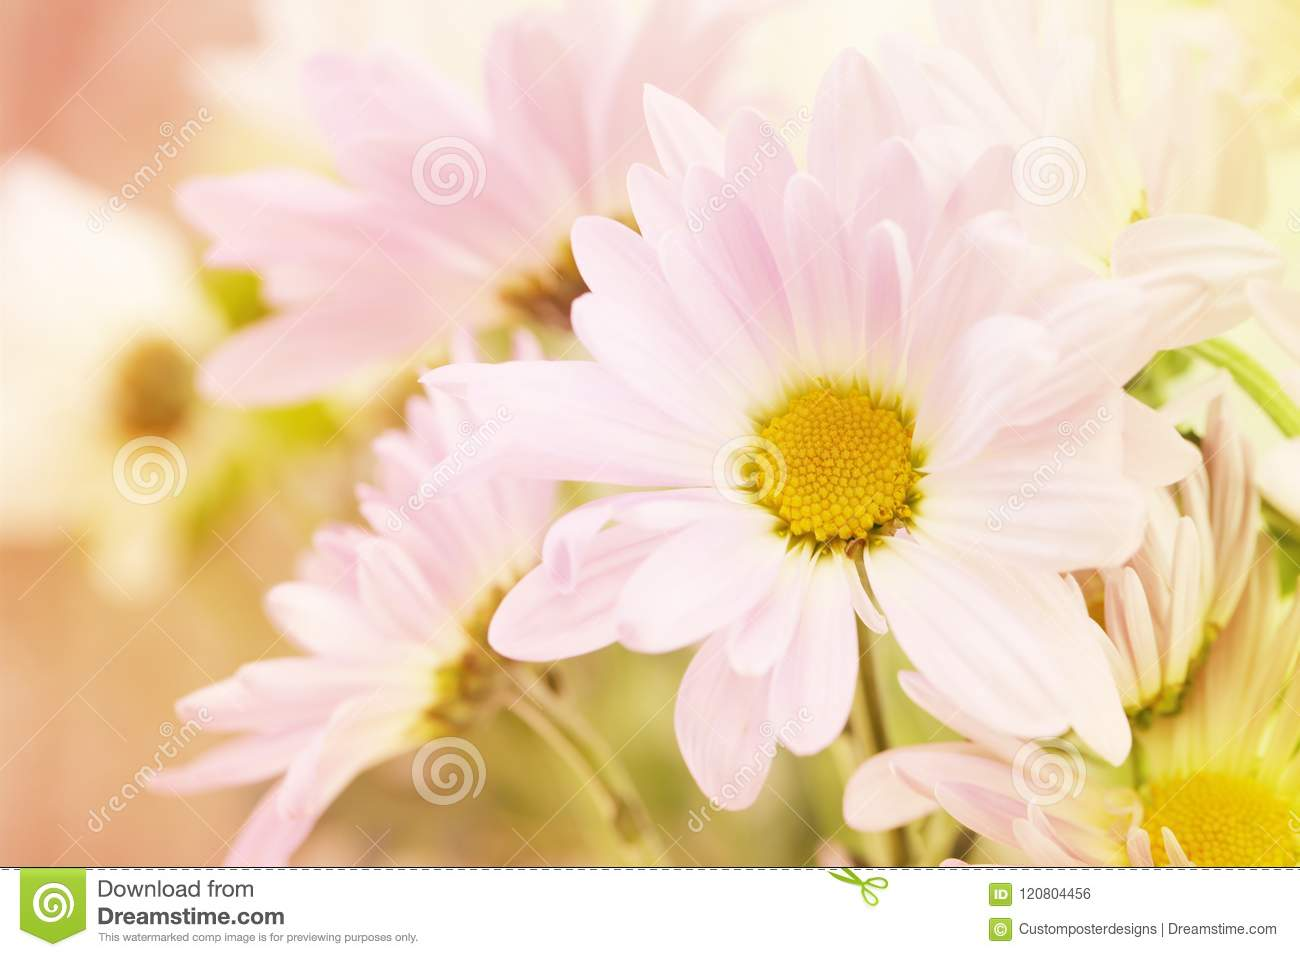 Download A flower saying hello. stock photo. Image of beauty - 120804456